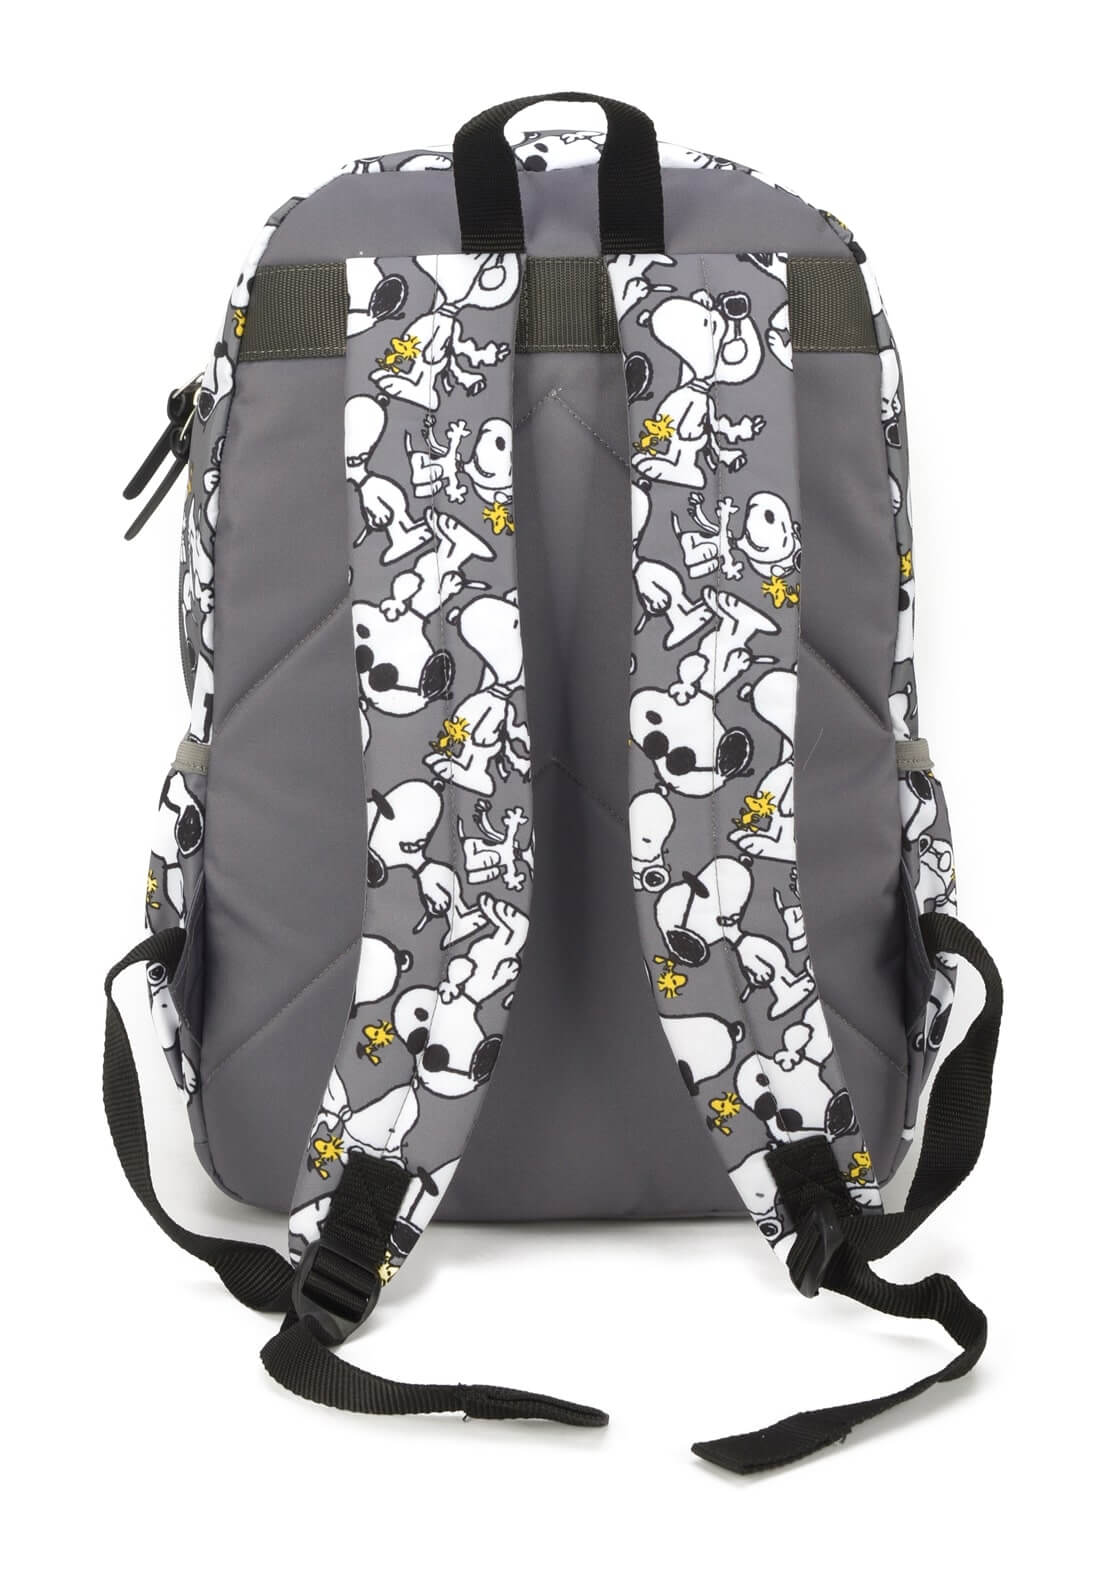 Mochila Notebook Peaunuts Snoopy by Up4You Cinza Original